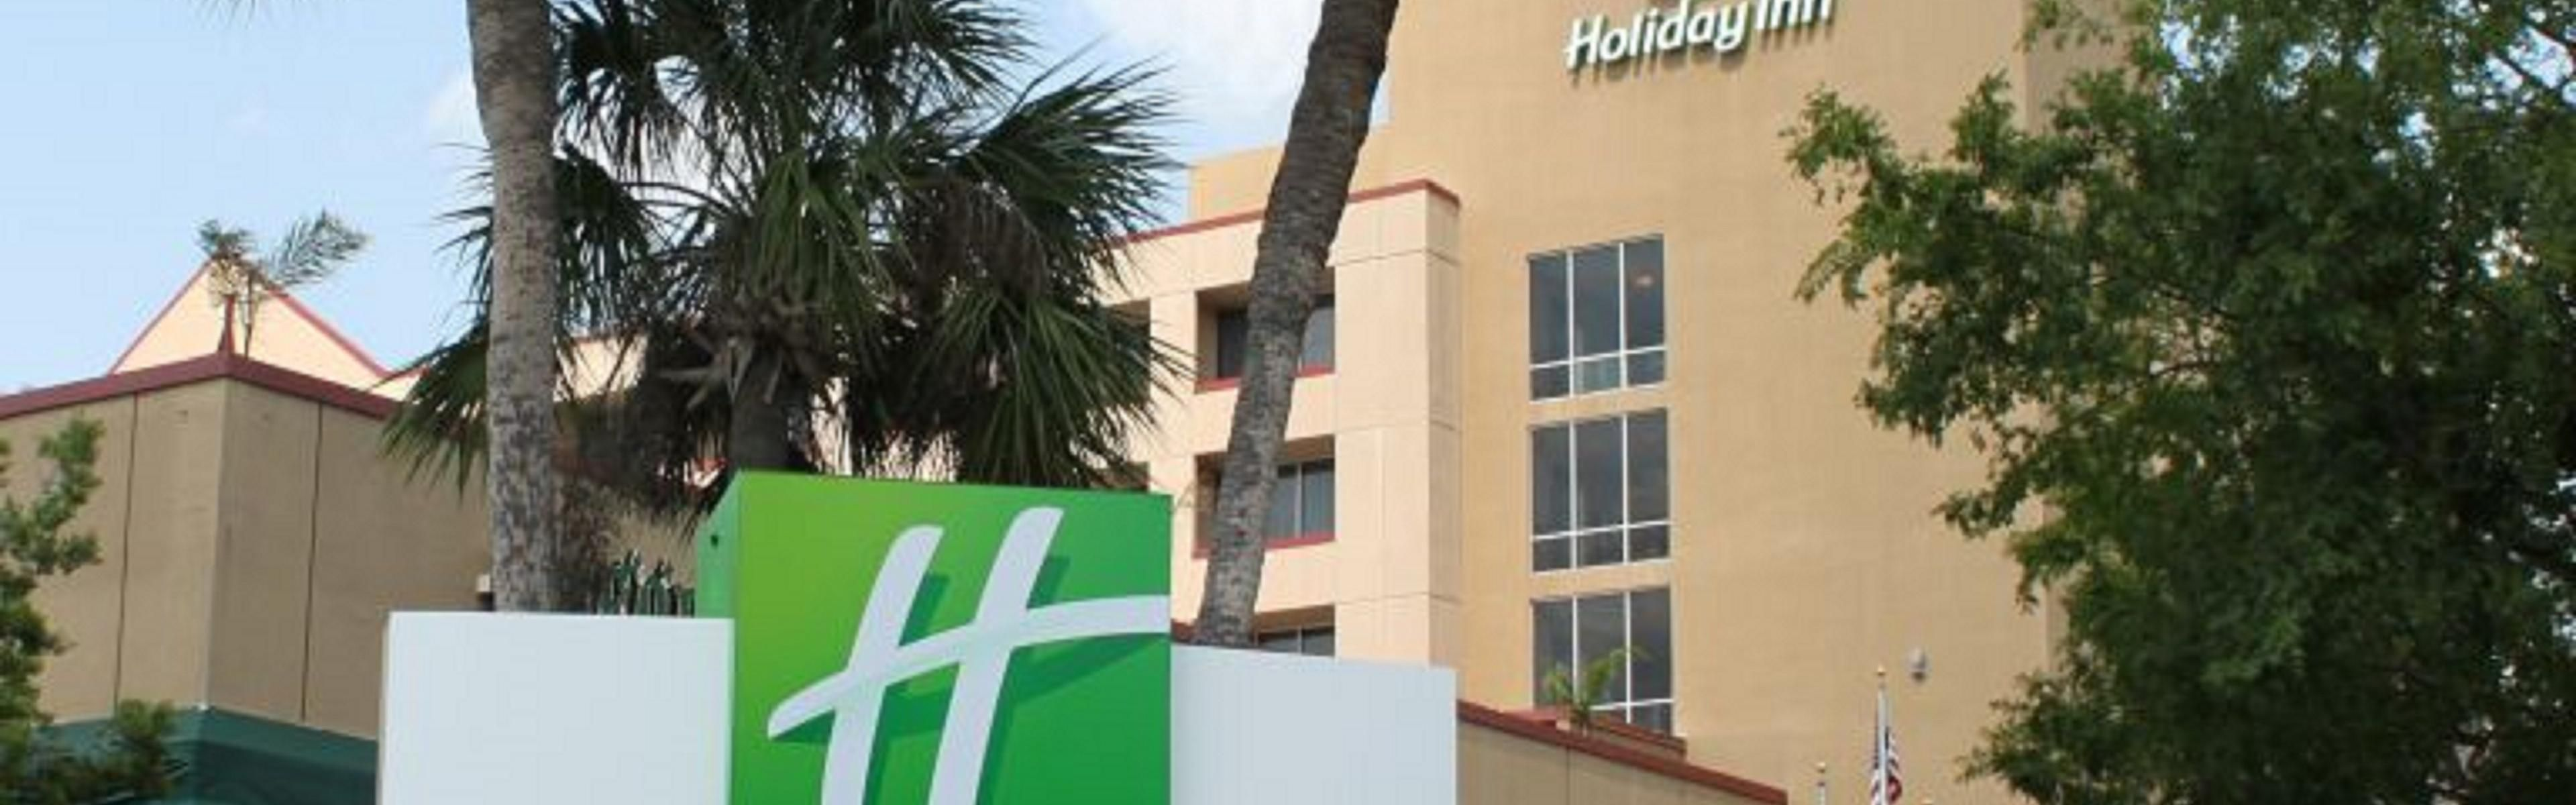 Holiday Inn Gainesville-University Ctr image 0